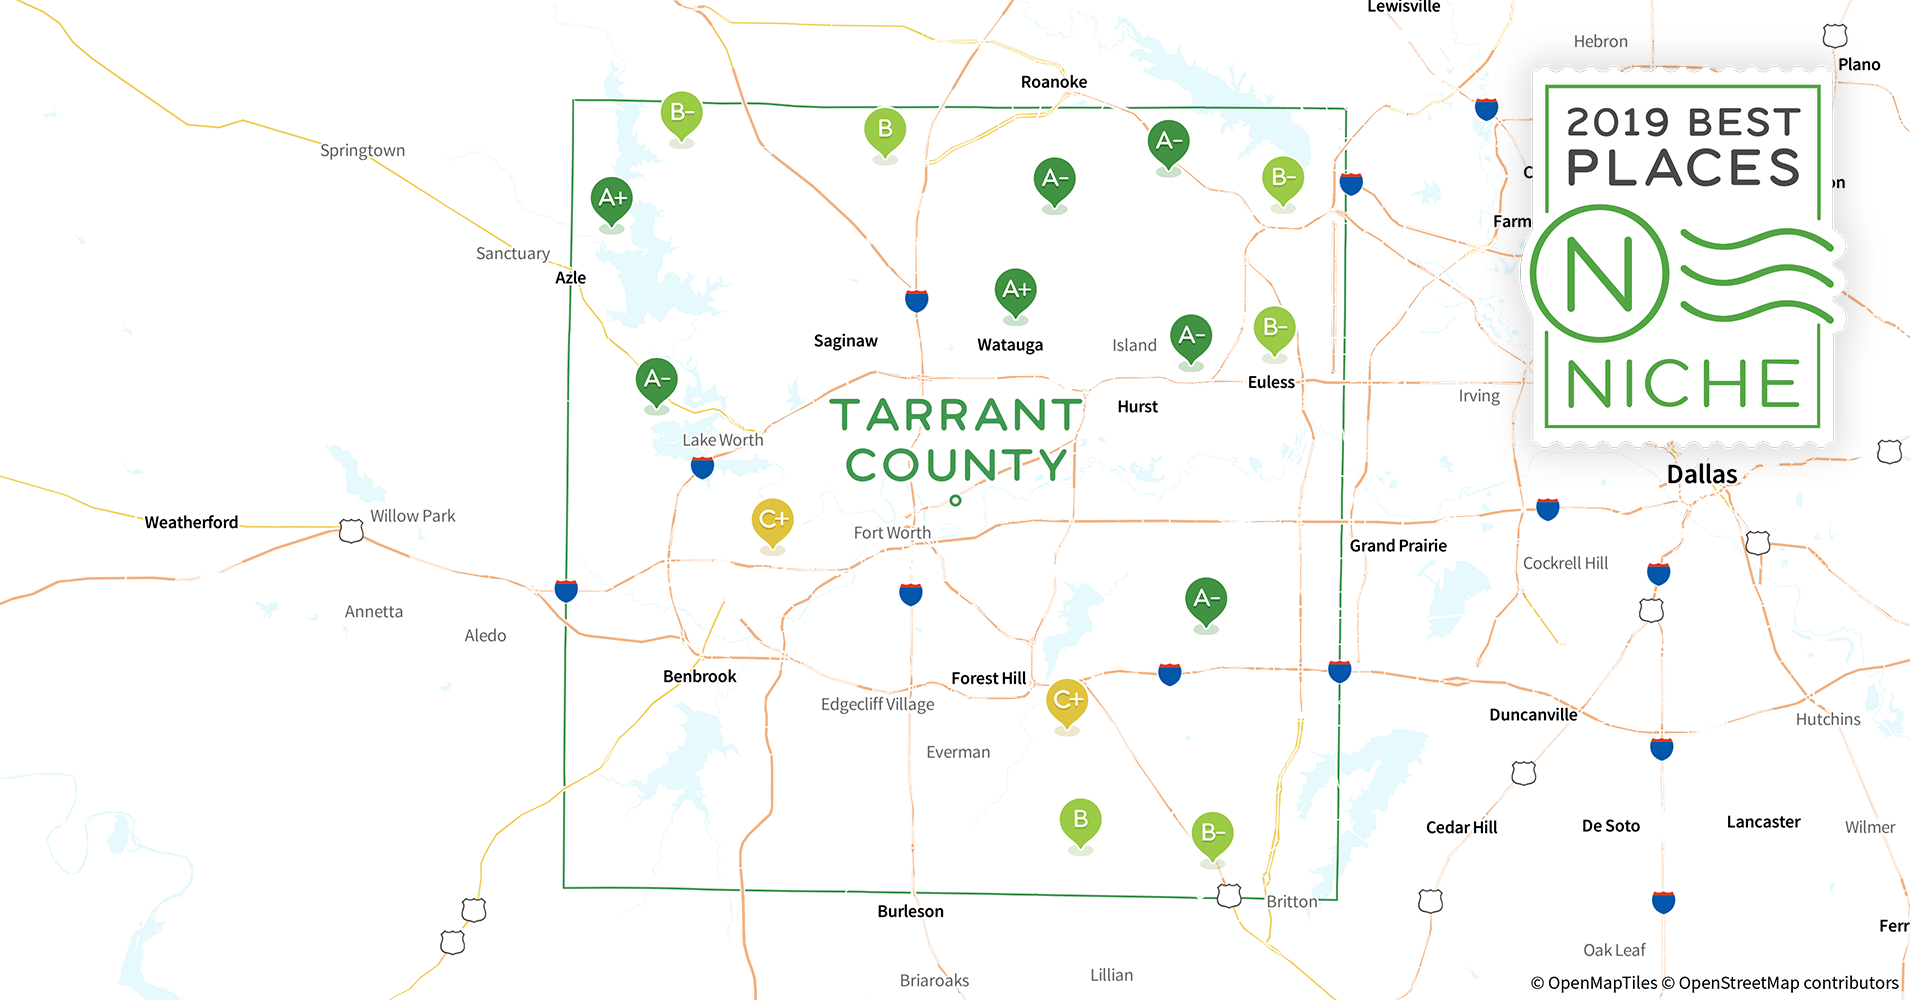 2019 Safe Places to Live in Tarrant County, TX - Niche